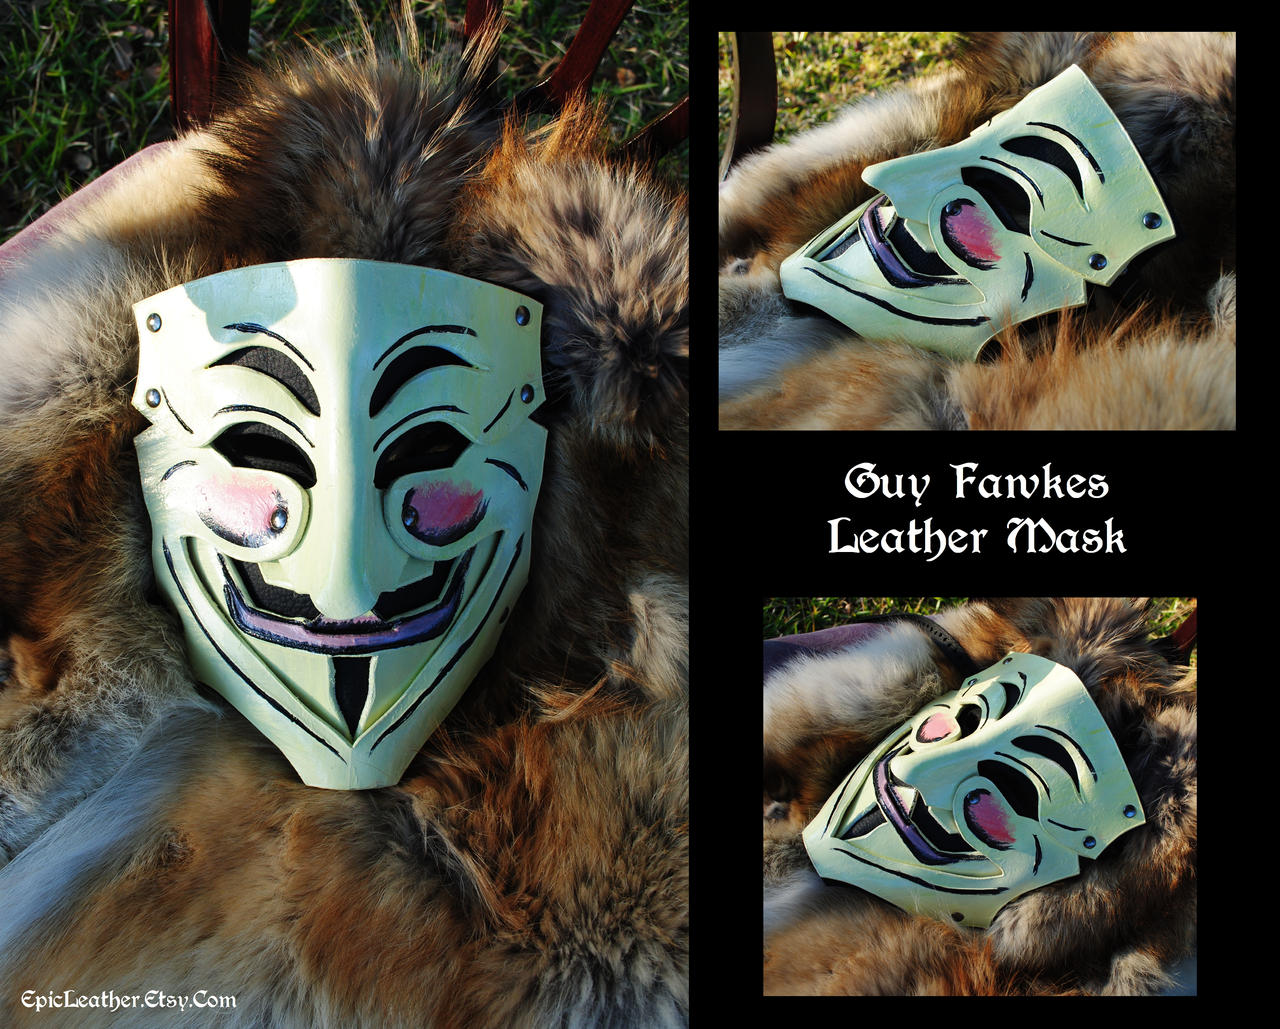 Guy Fawkes Leather Mask by Epic-Leather